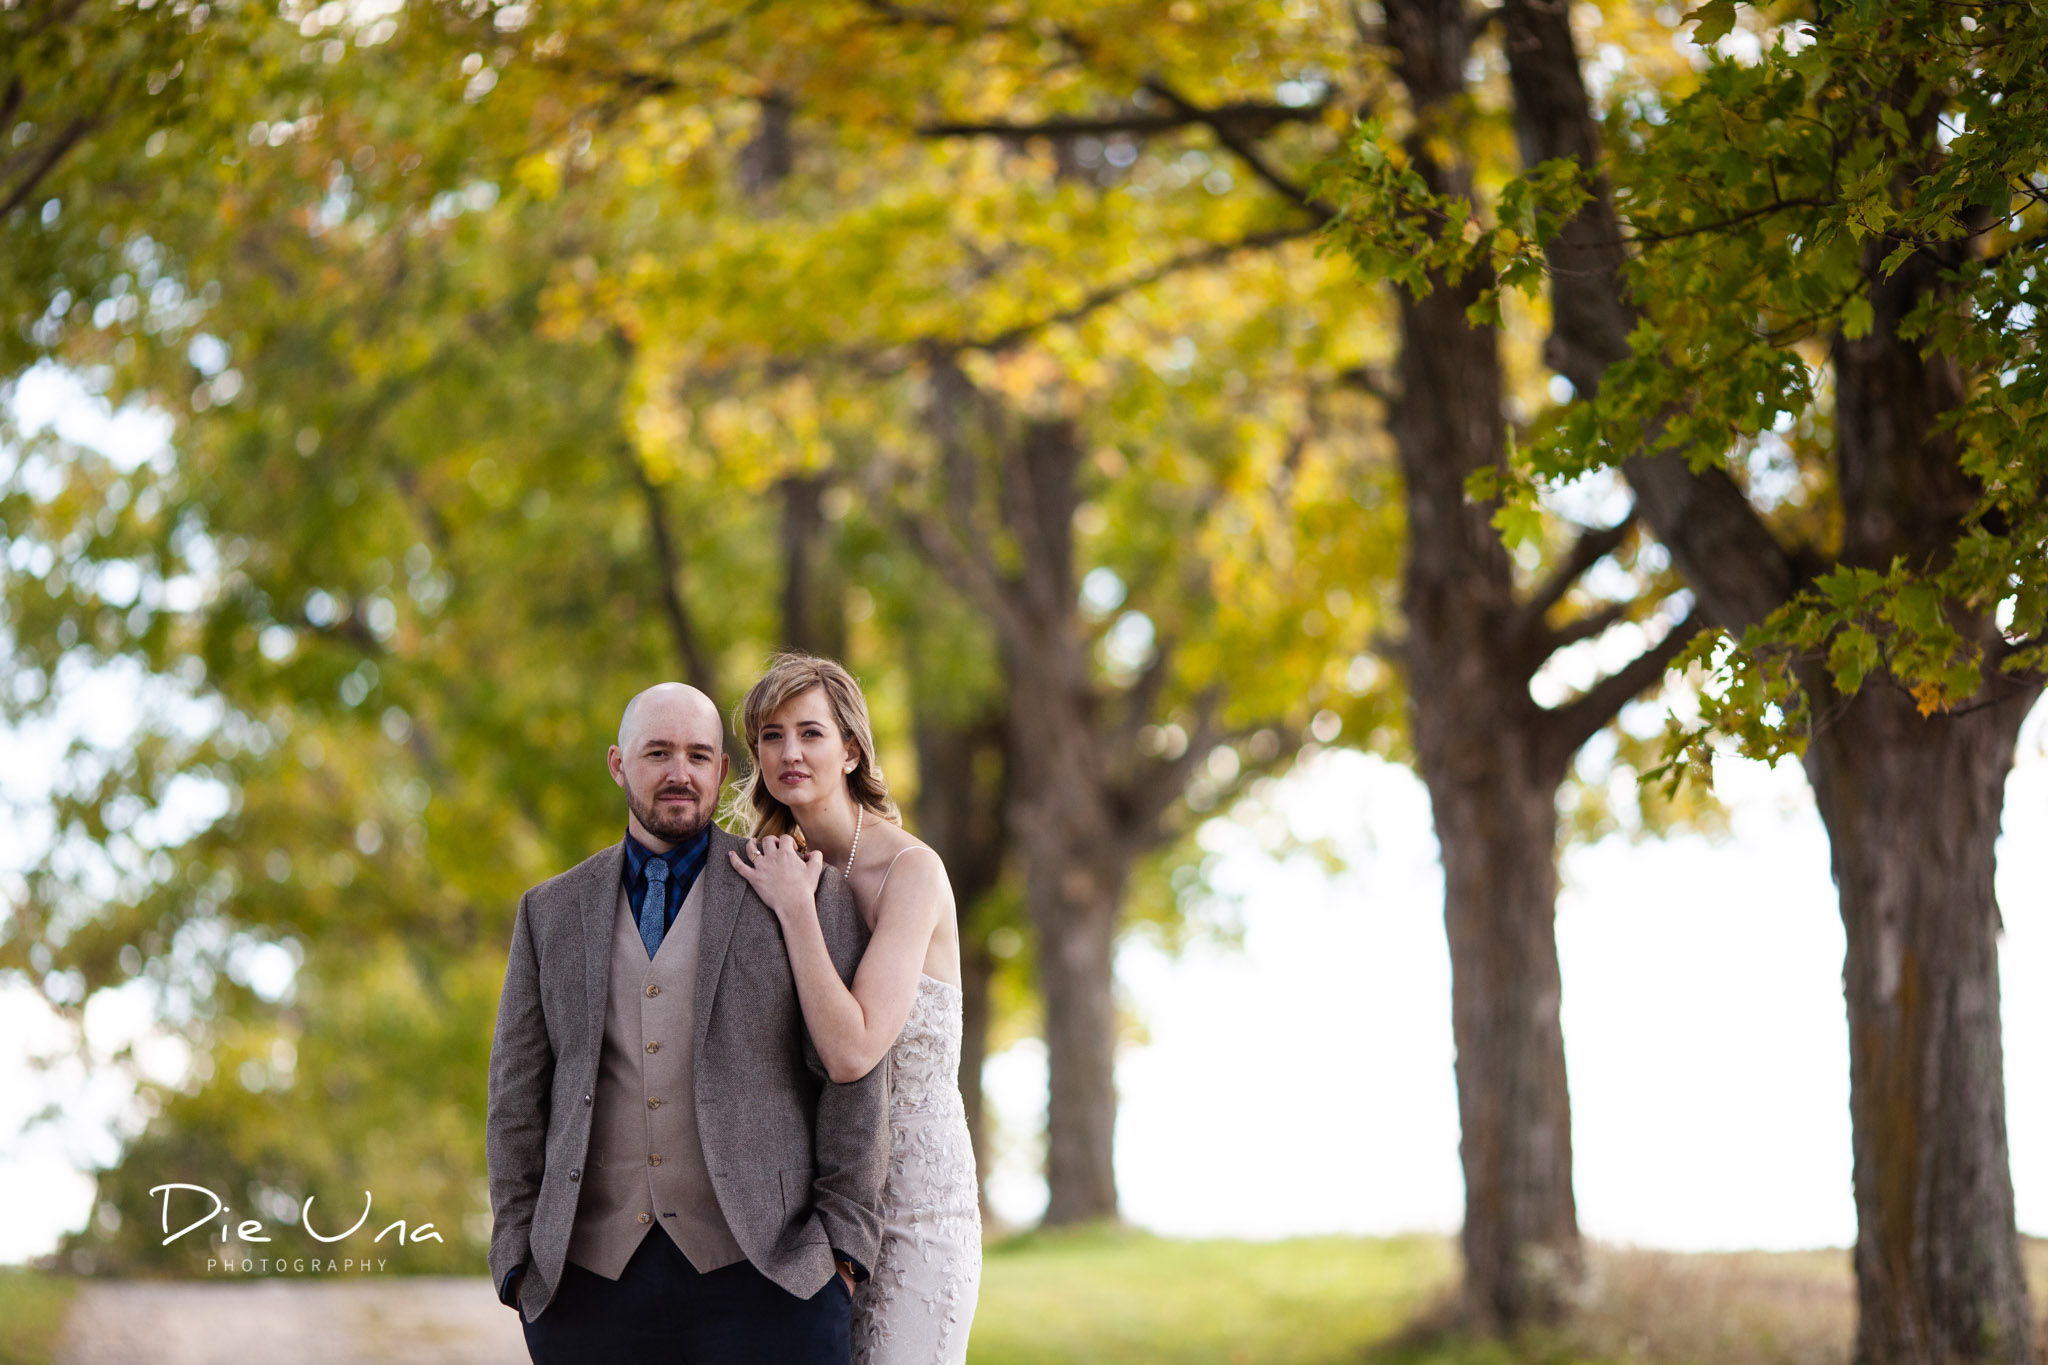 bride hugging groom from behind with yellow fall leaves in the background for wedding portrait.jpg